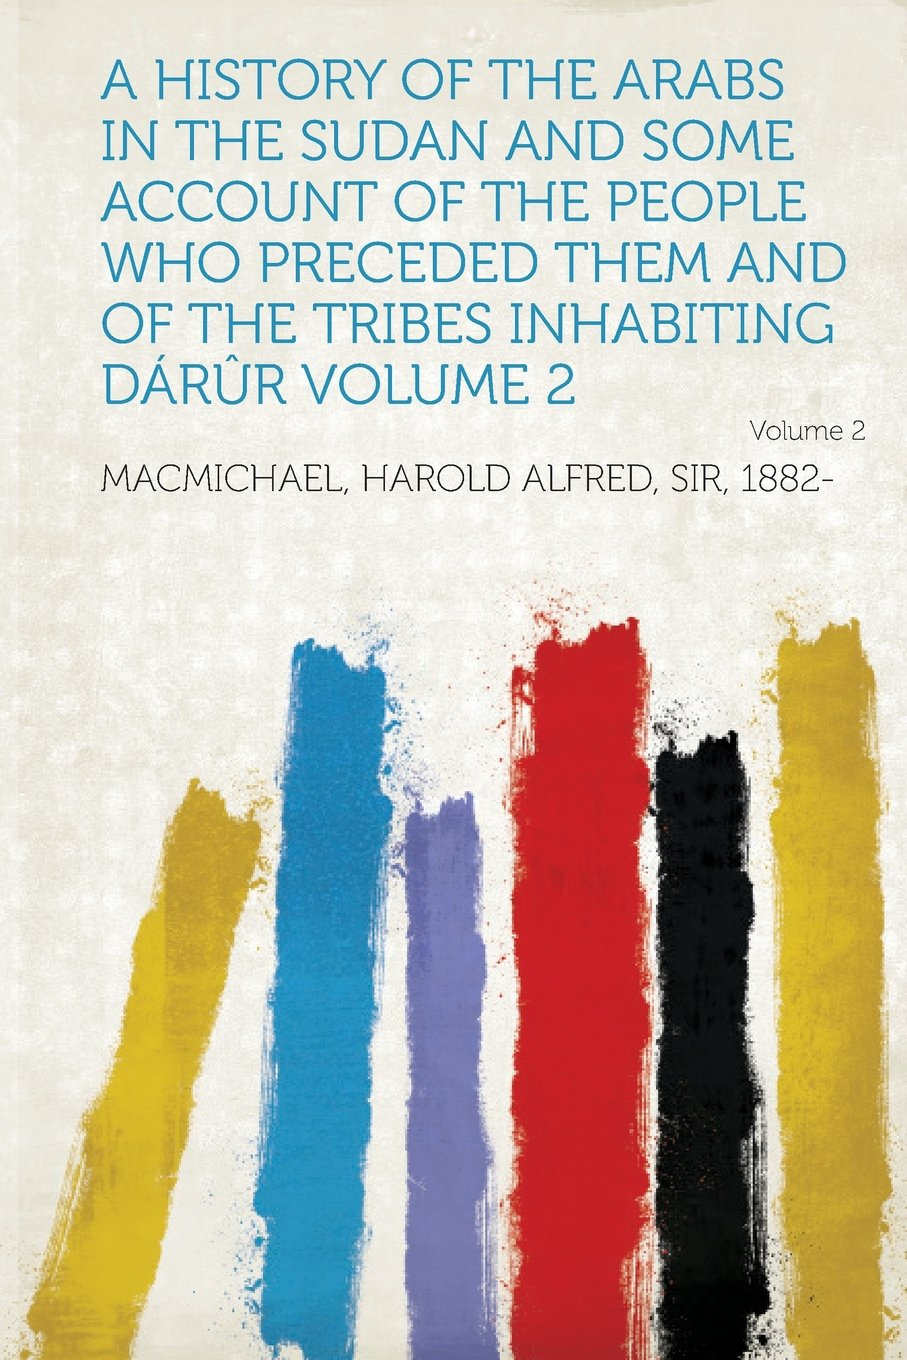 A History of the Arabs in the Sudan and Some Account of the People Who Preceded Them and of the Tribes Inhabiting Darur Volume 2